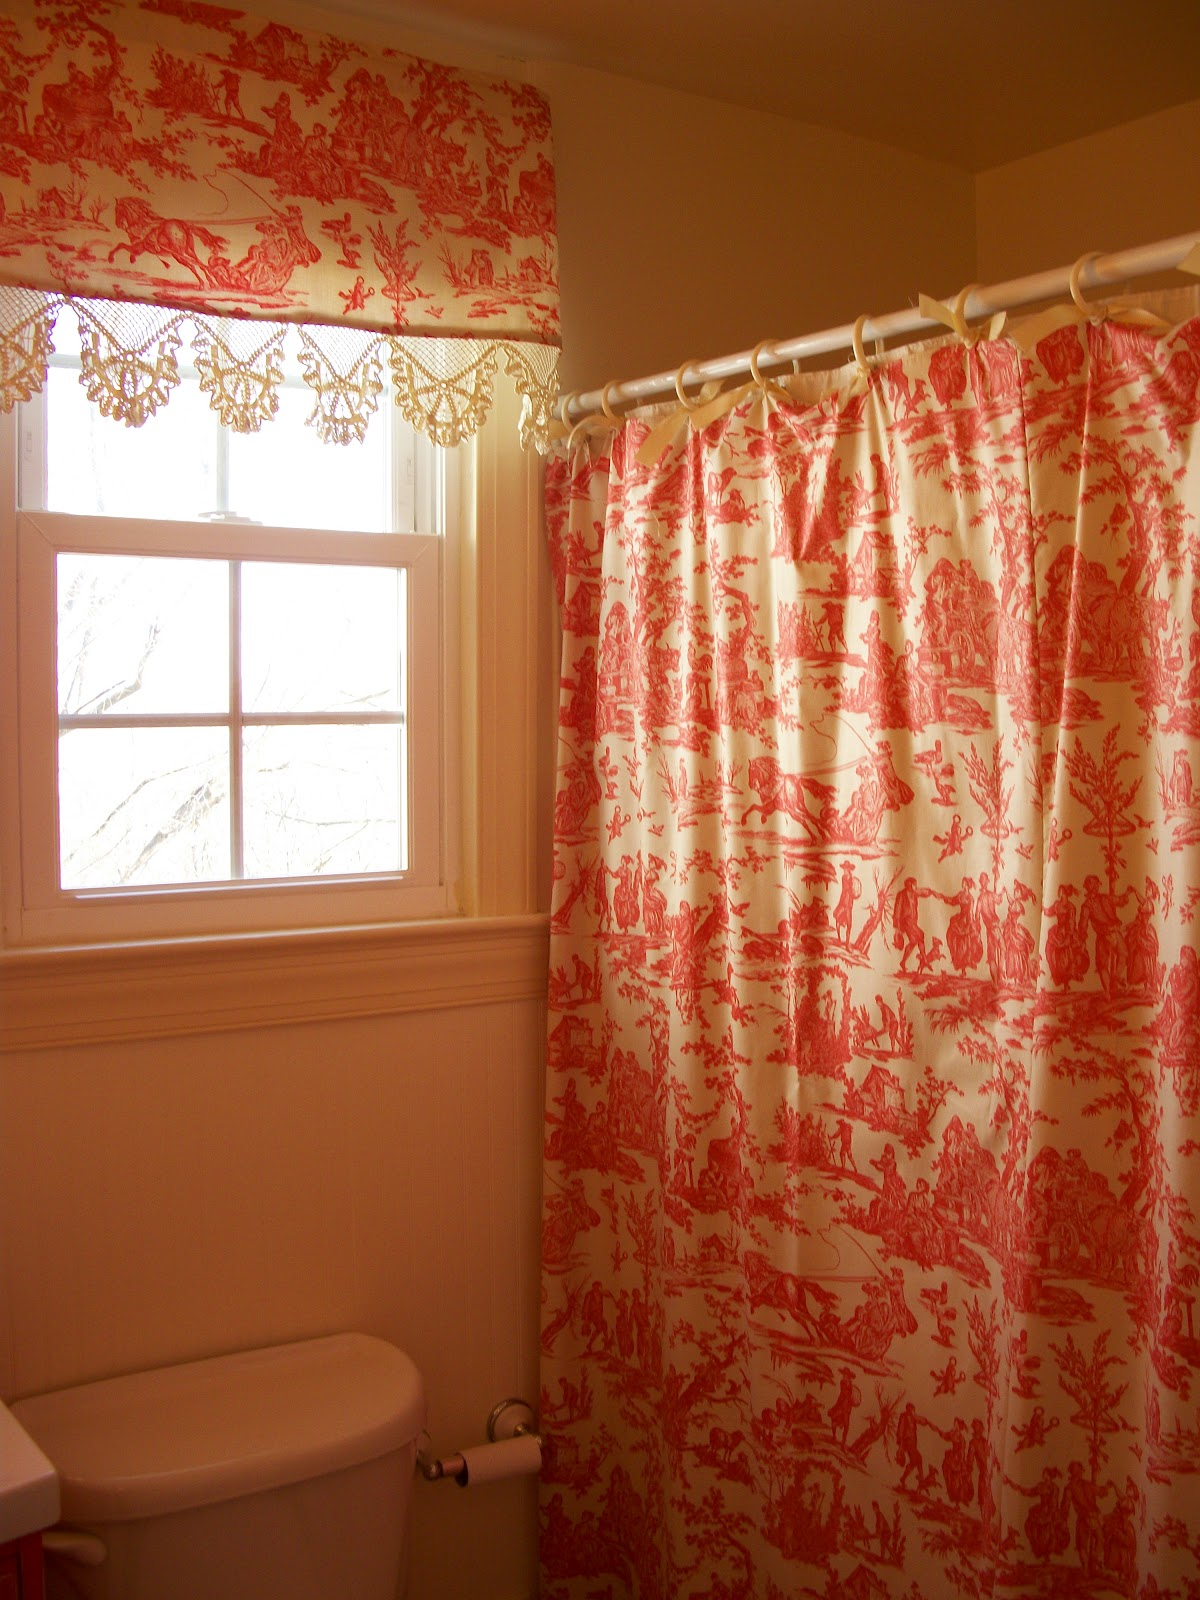 Bathroom curtain drapes ~ Decorate the house with beautiful curtains